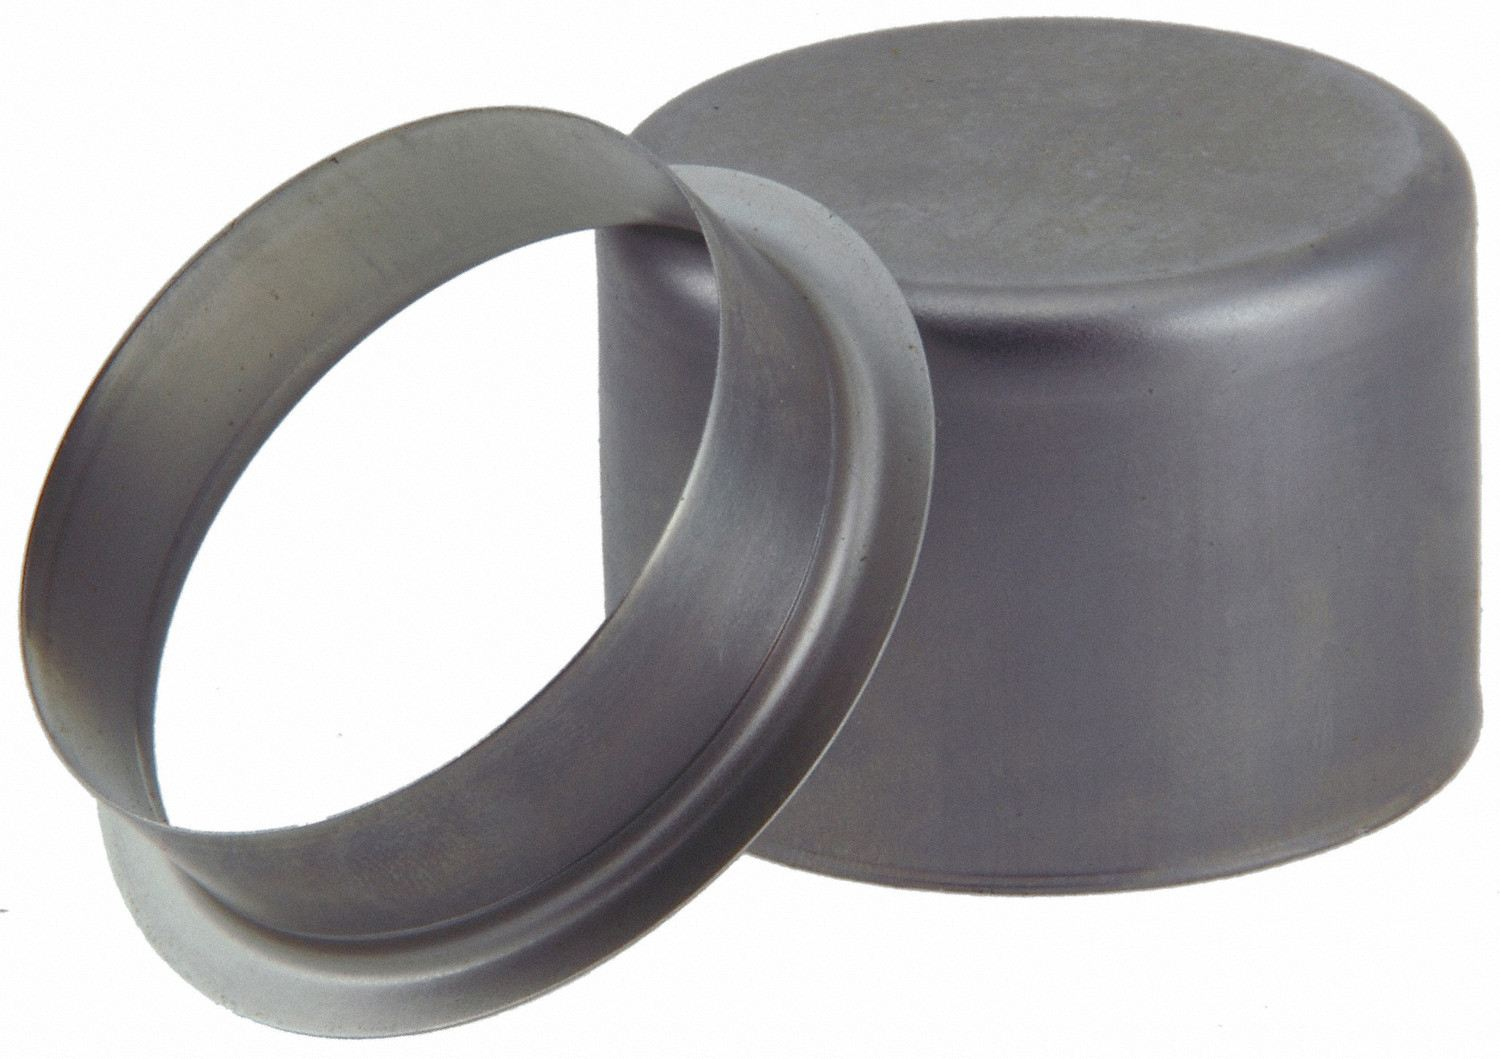 NATIONAL SEAL/BEARING/HUB ASSY - Engine Crankshaft Repair Sleeve - BCA 99353